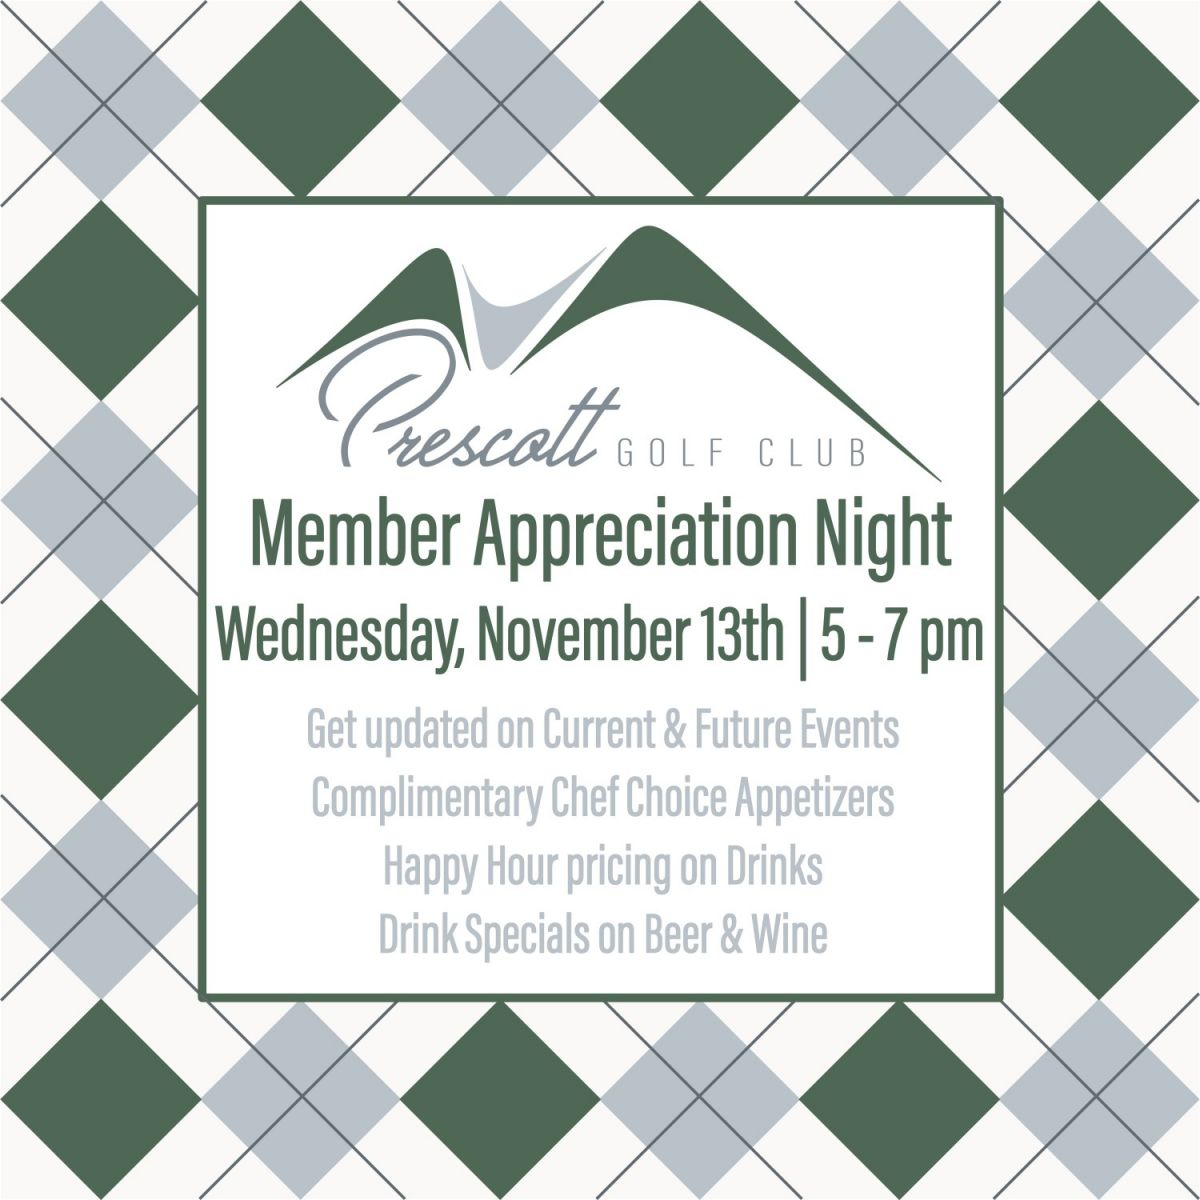 Member Appreciaton Night. Wednesday, November 13th, 5-7pm. Get updated on current and future events. Complimentary chef choice appetizers. Happy hour pricing on drinks. Drink Specials on Beer and Wine.